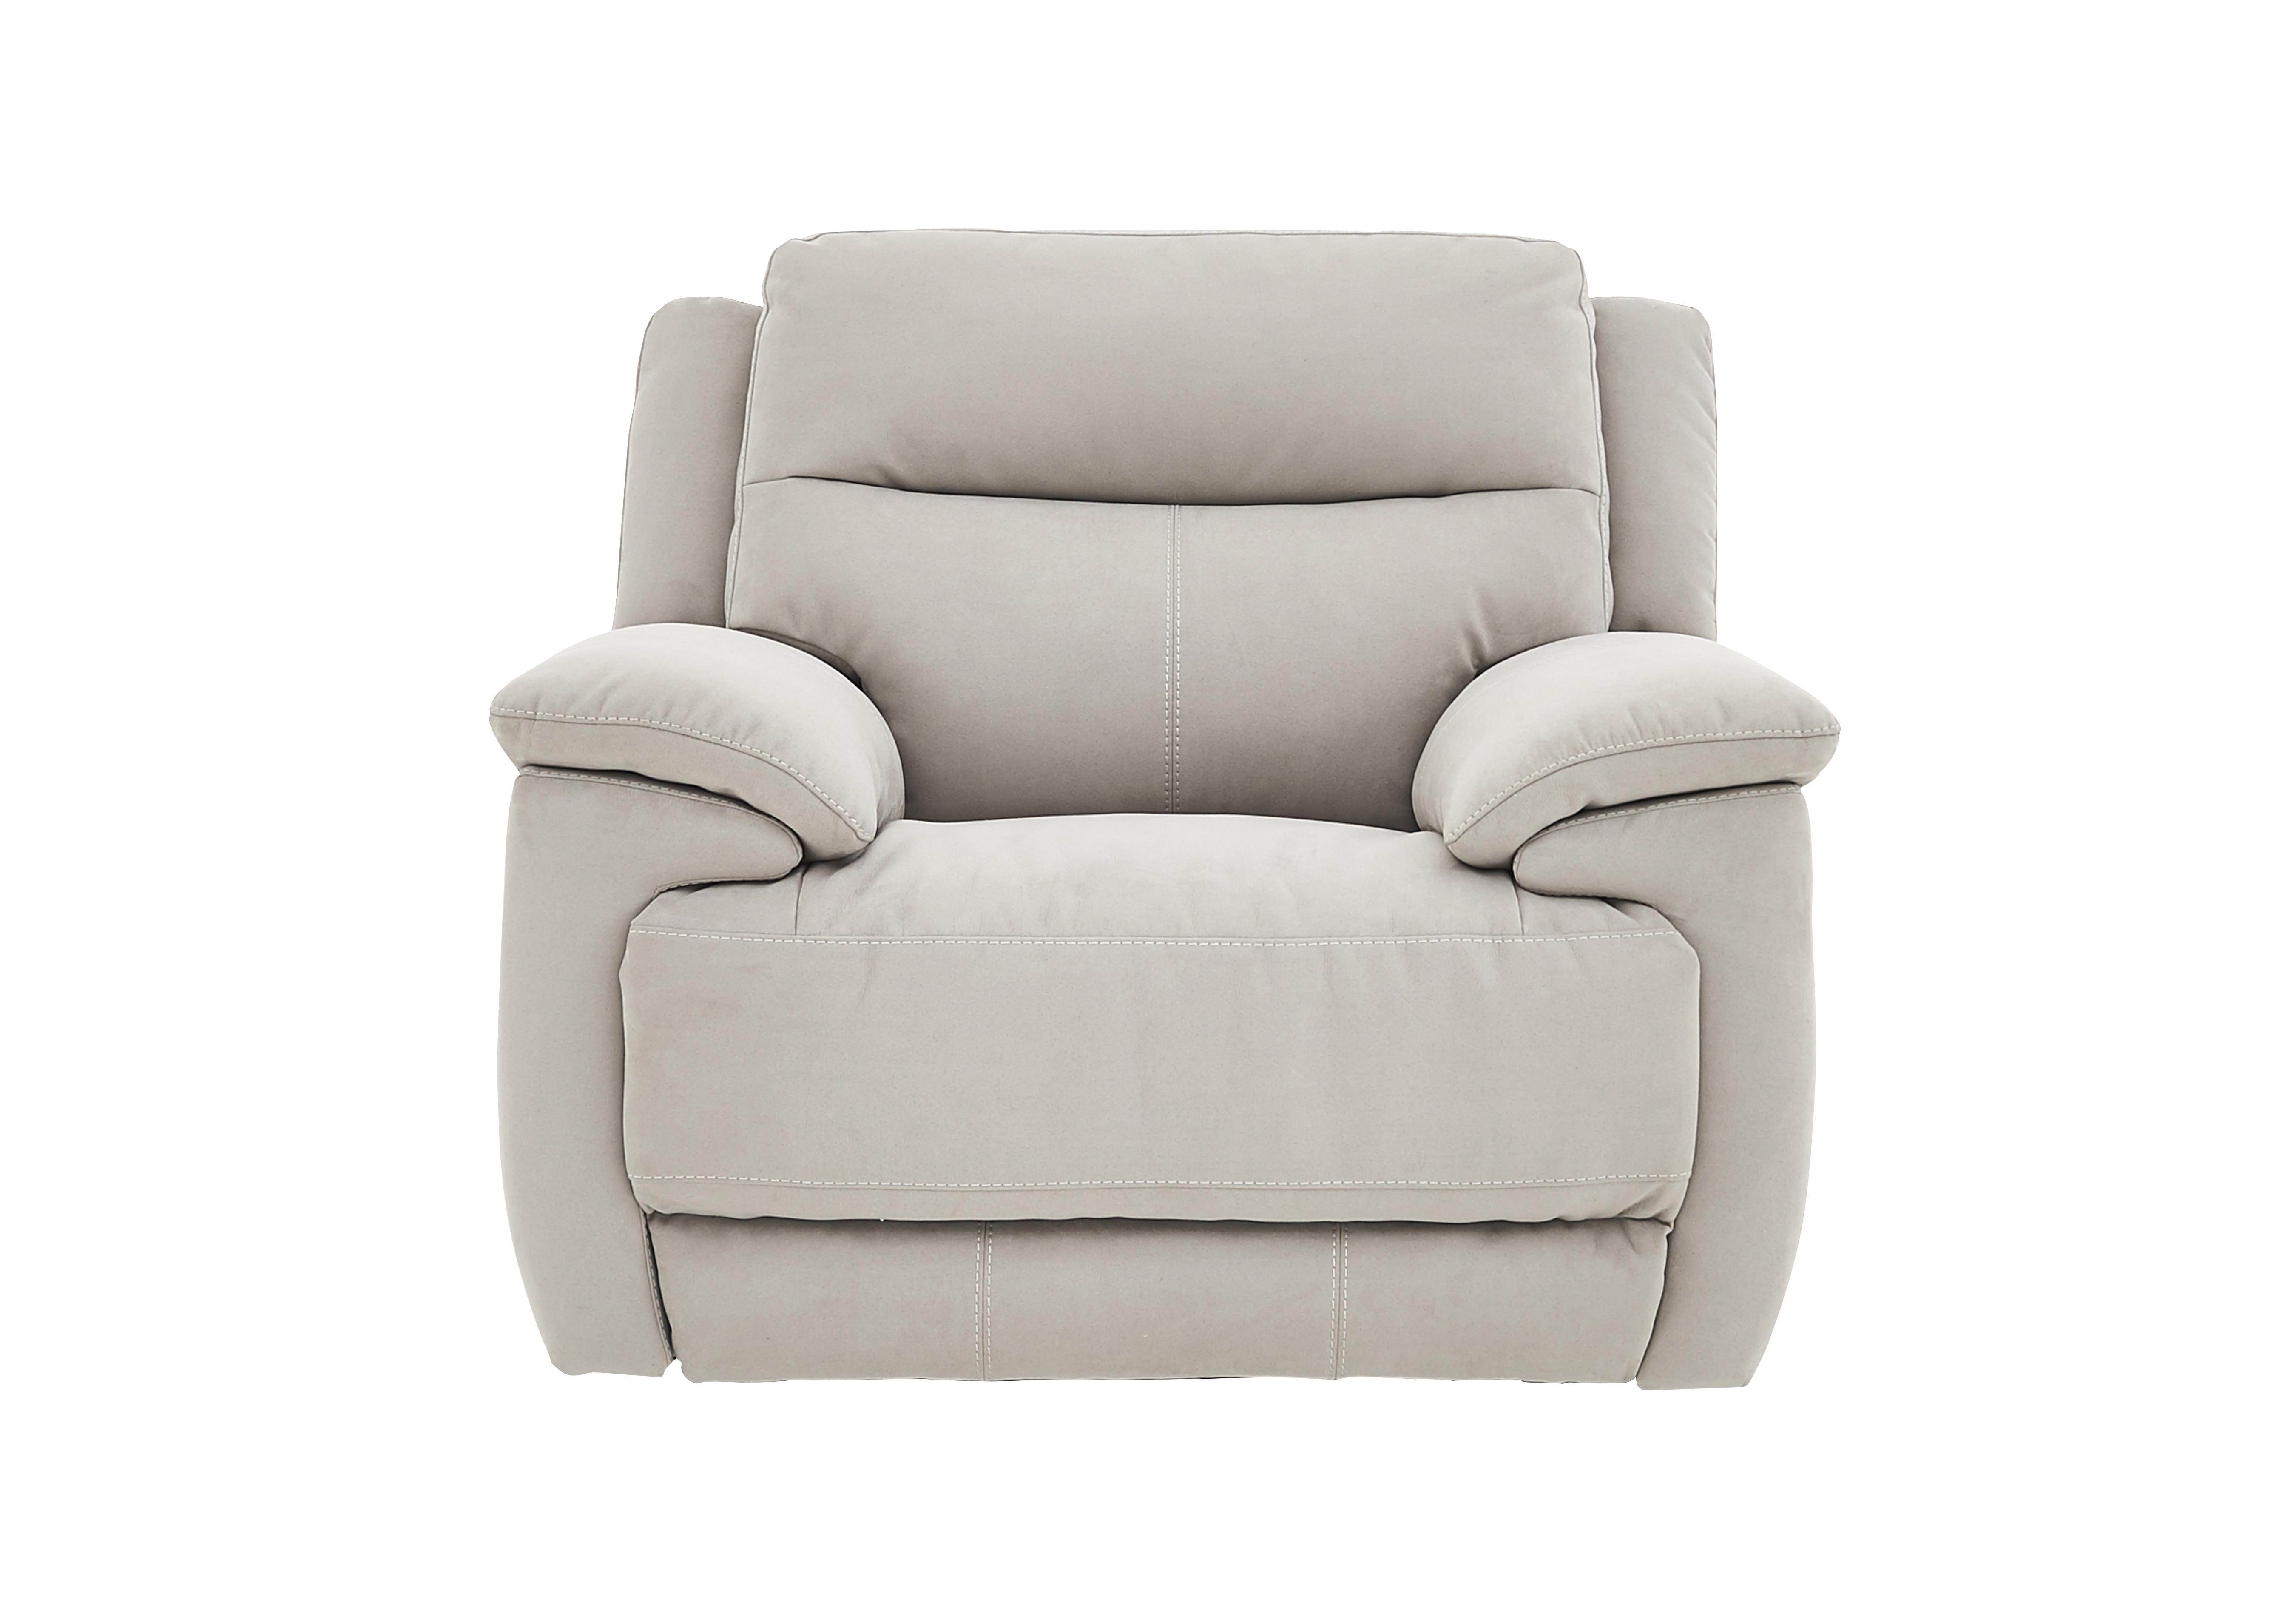 recliner chairs uk red blue chair armchairs furniture village